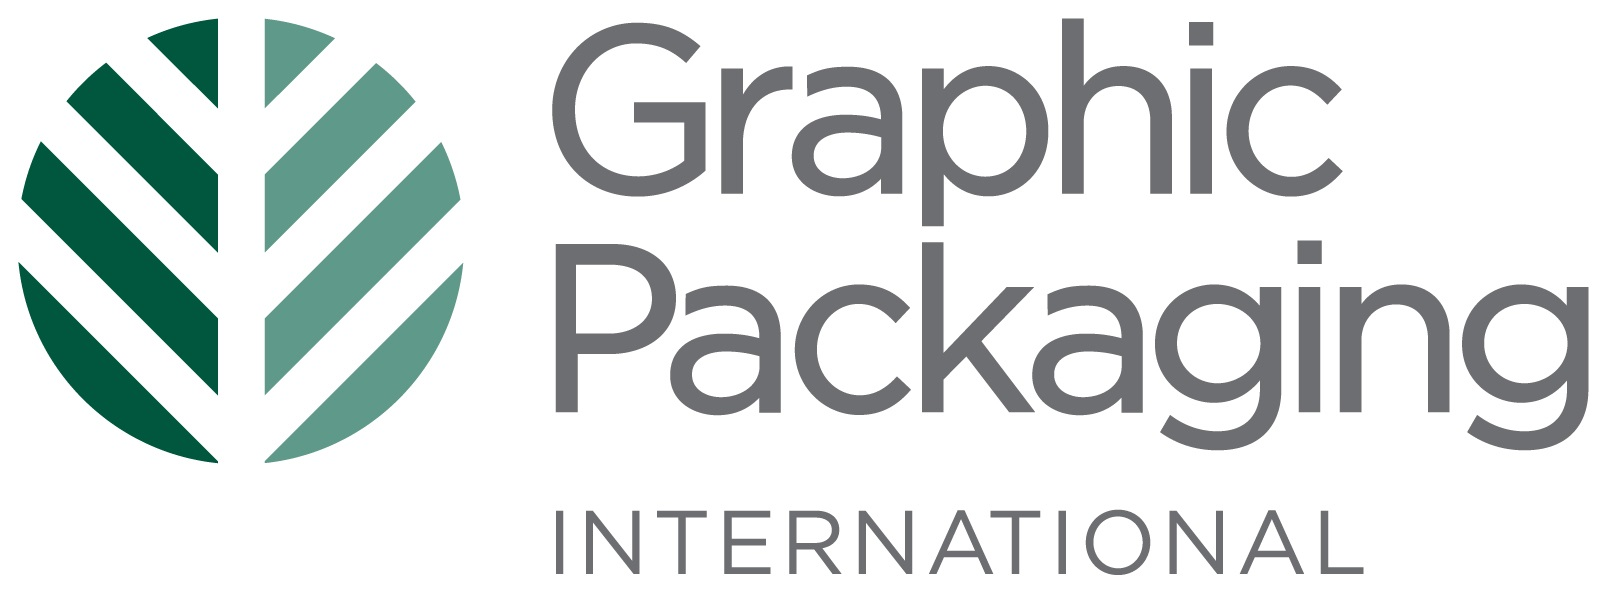 Graphic Packaging International, LLC in Crosby, MN. Packaging machinery for the consumer products industries, including pick & place, sleevers, hang tag applicators & clamshell labeling & specialty machinery.